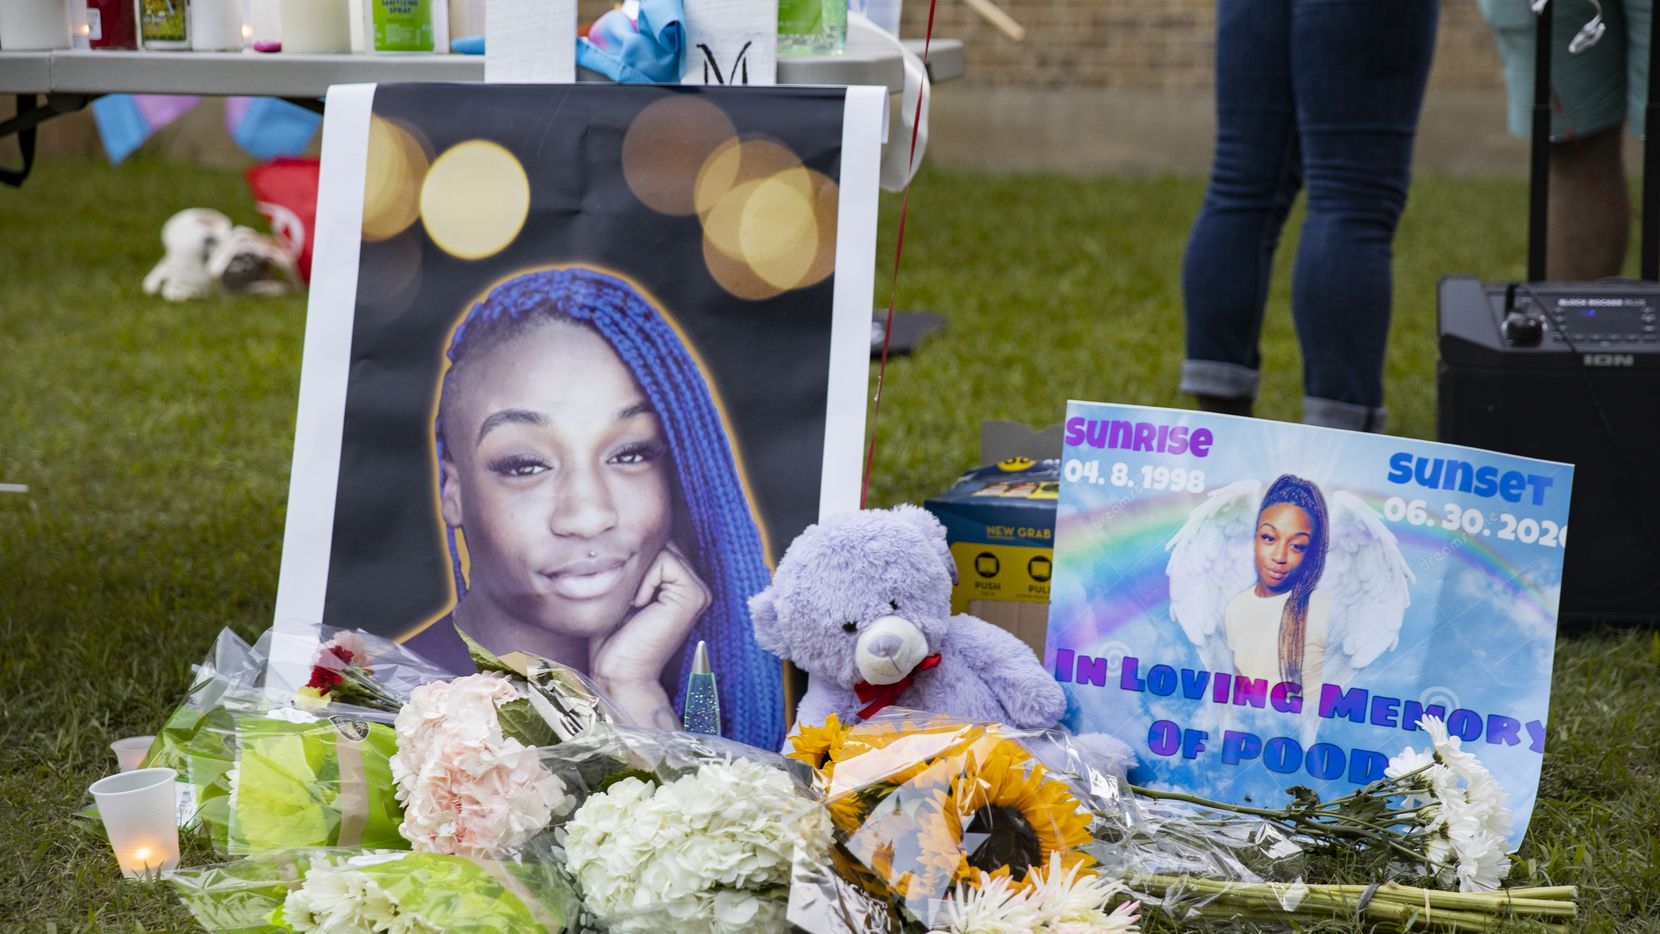 Flowers were placed near portraits of Merci Richey at a July 4 vigil for the trans woman who was killed June 30.